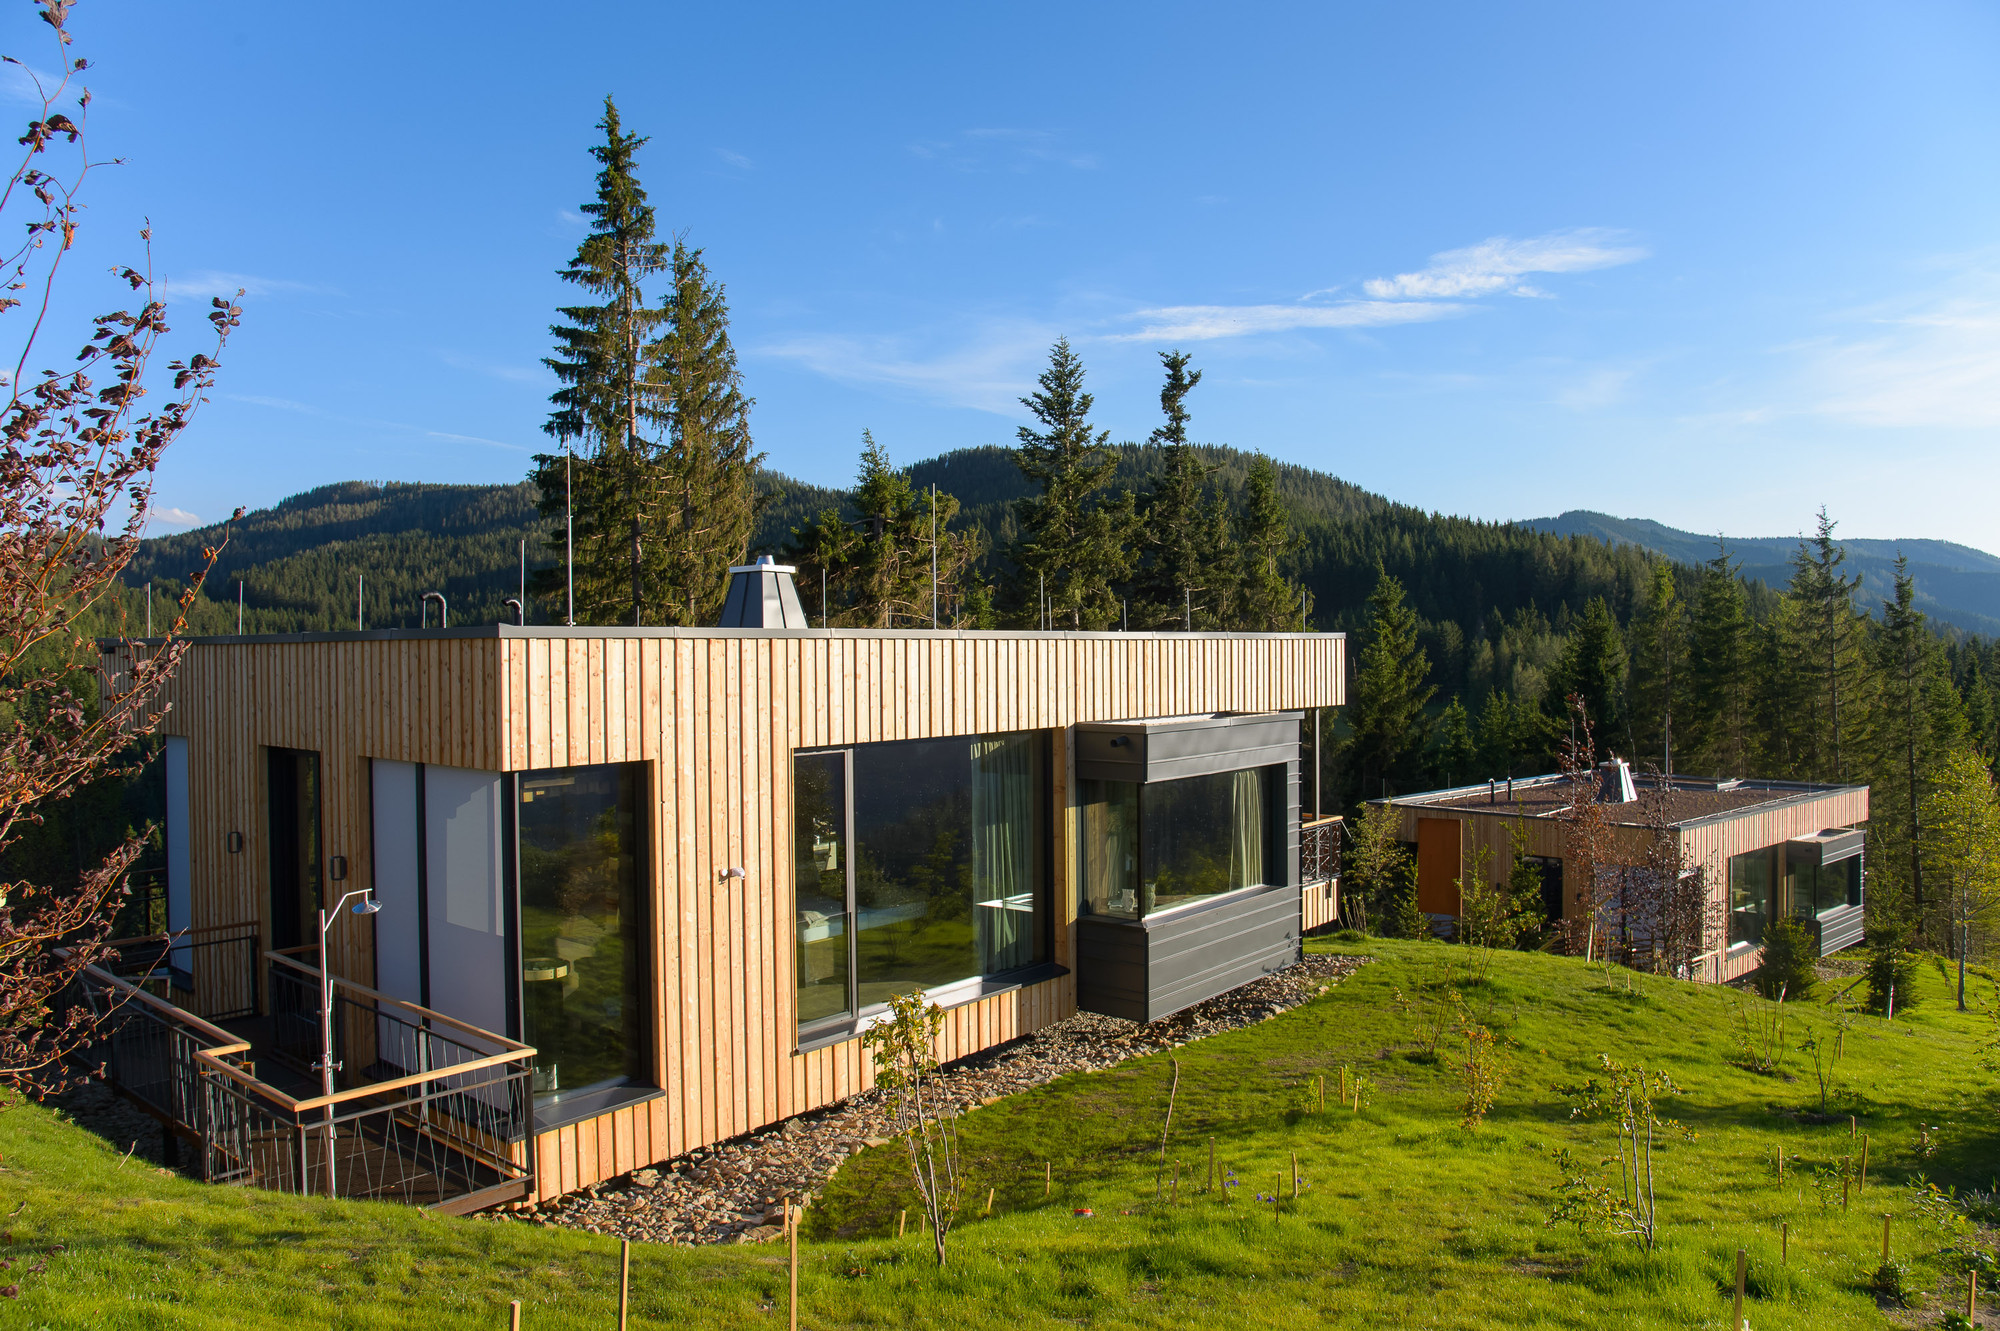 Gallery of deluxe mountain chalets viereck architects 15 for Architectural designs for chalets